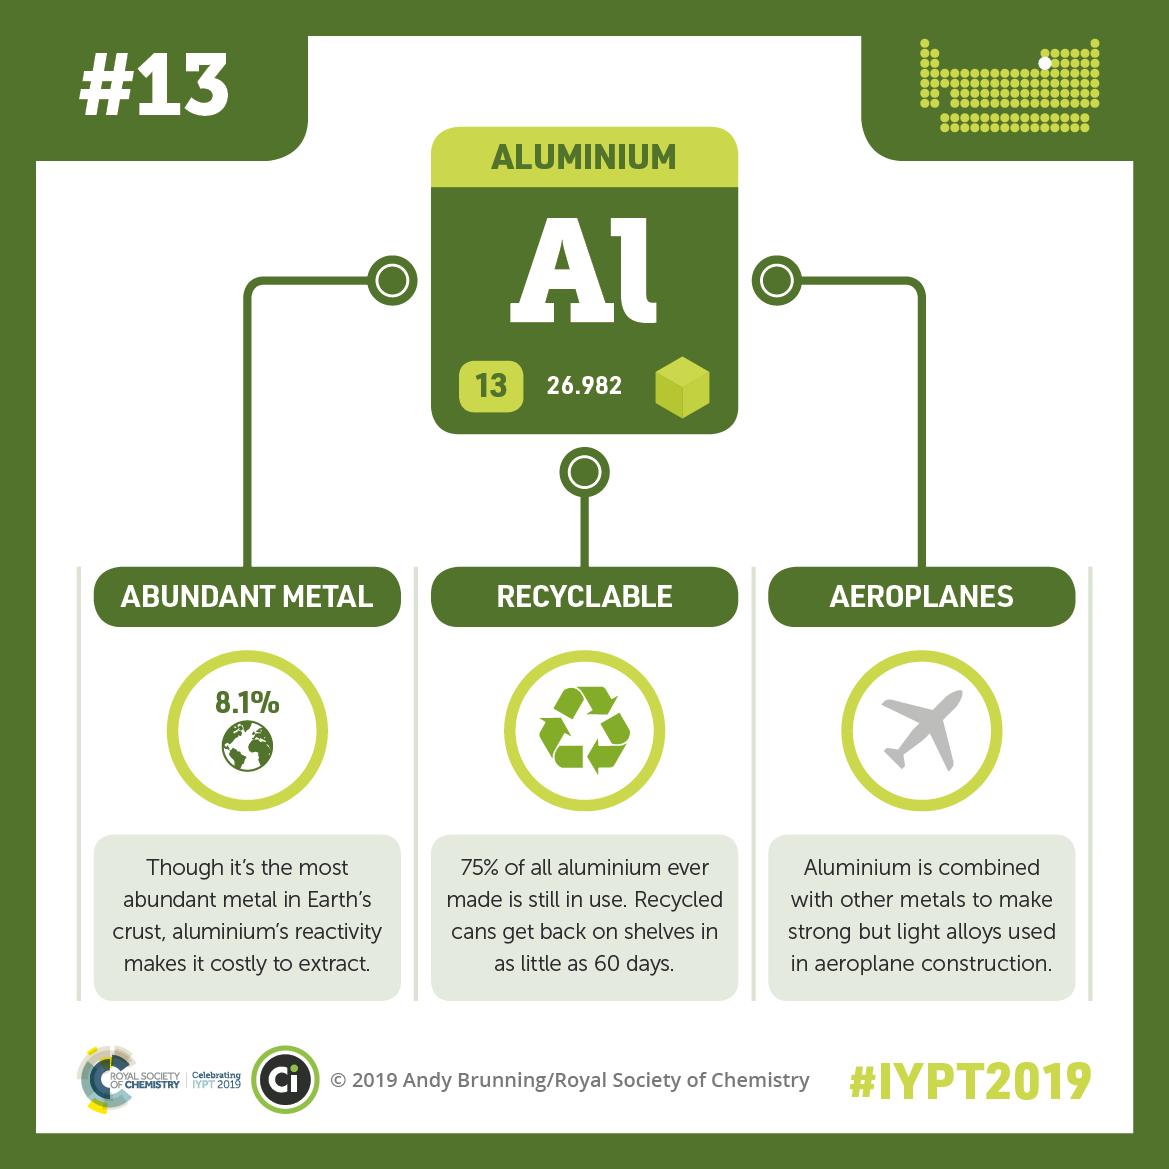 IYPT 2019 Elements 013: Aluminium: Drinks cans and aeroplanes